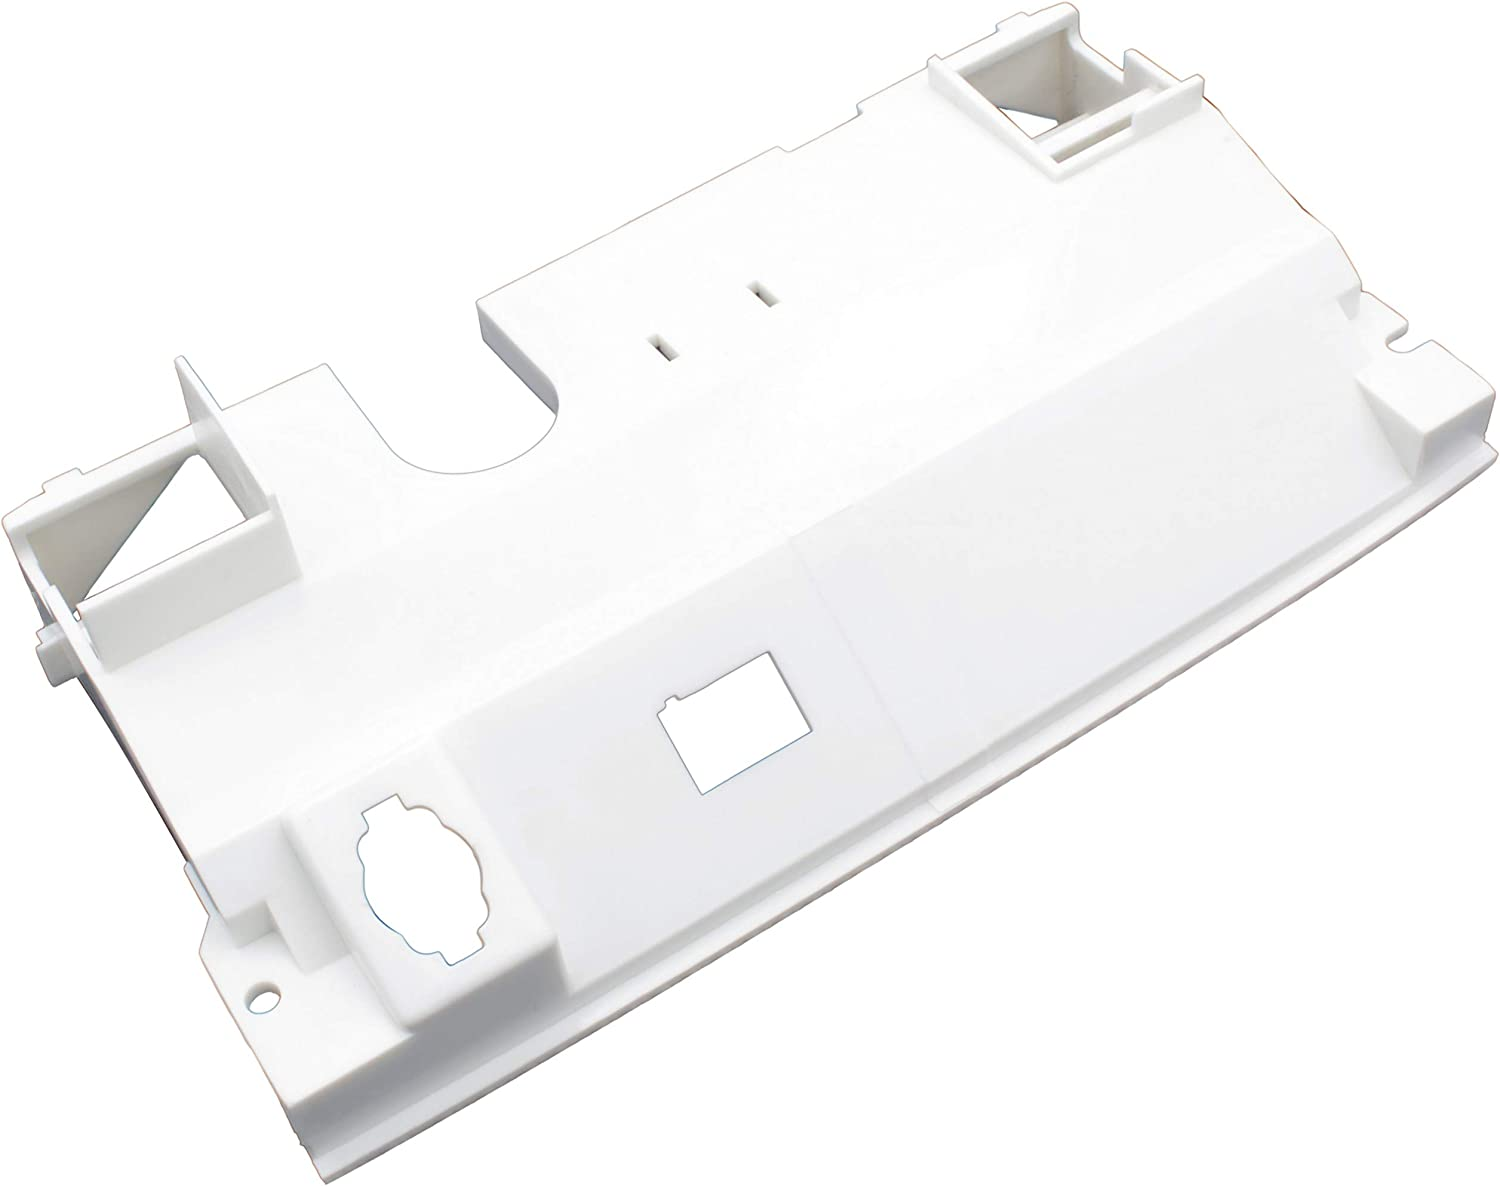 Supplying Demand 2180226 Bracket for Refrigerator Dispenser Compatible With Whirlpool Fits 2180228, 2180338